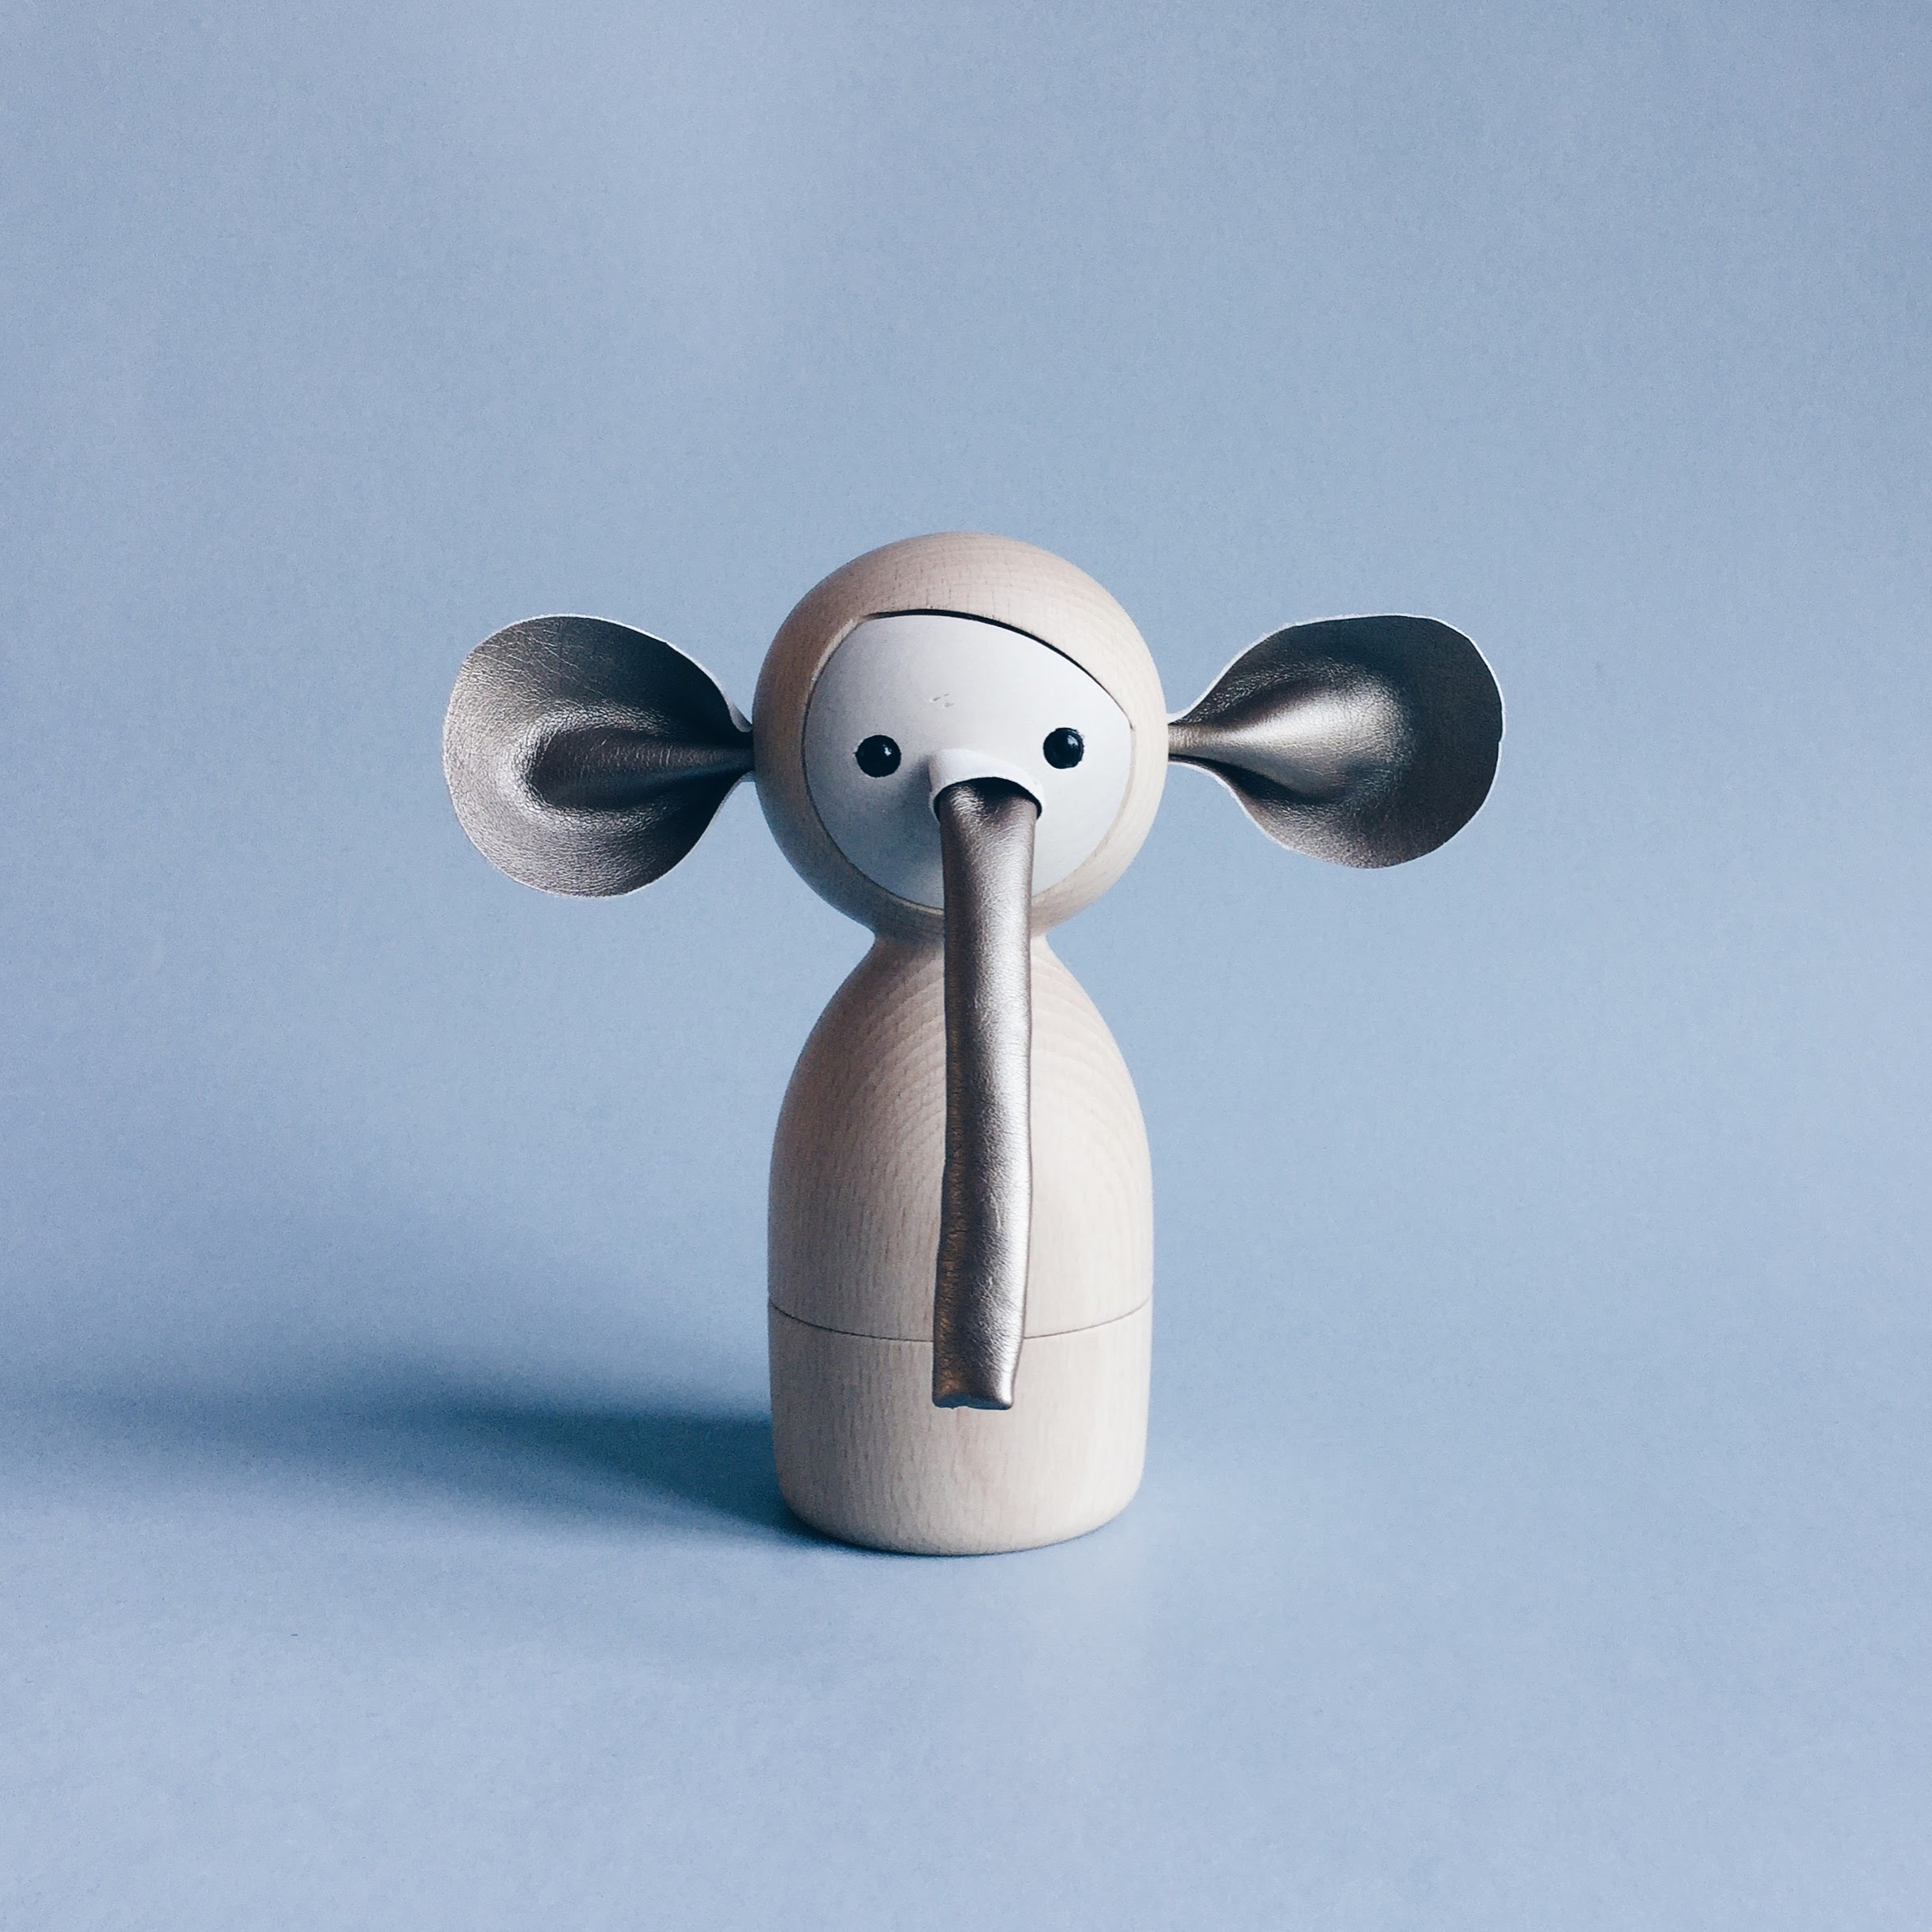 Minimal beautiful form allow children to express themselves freely